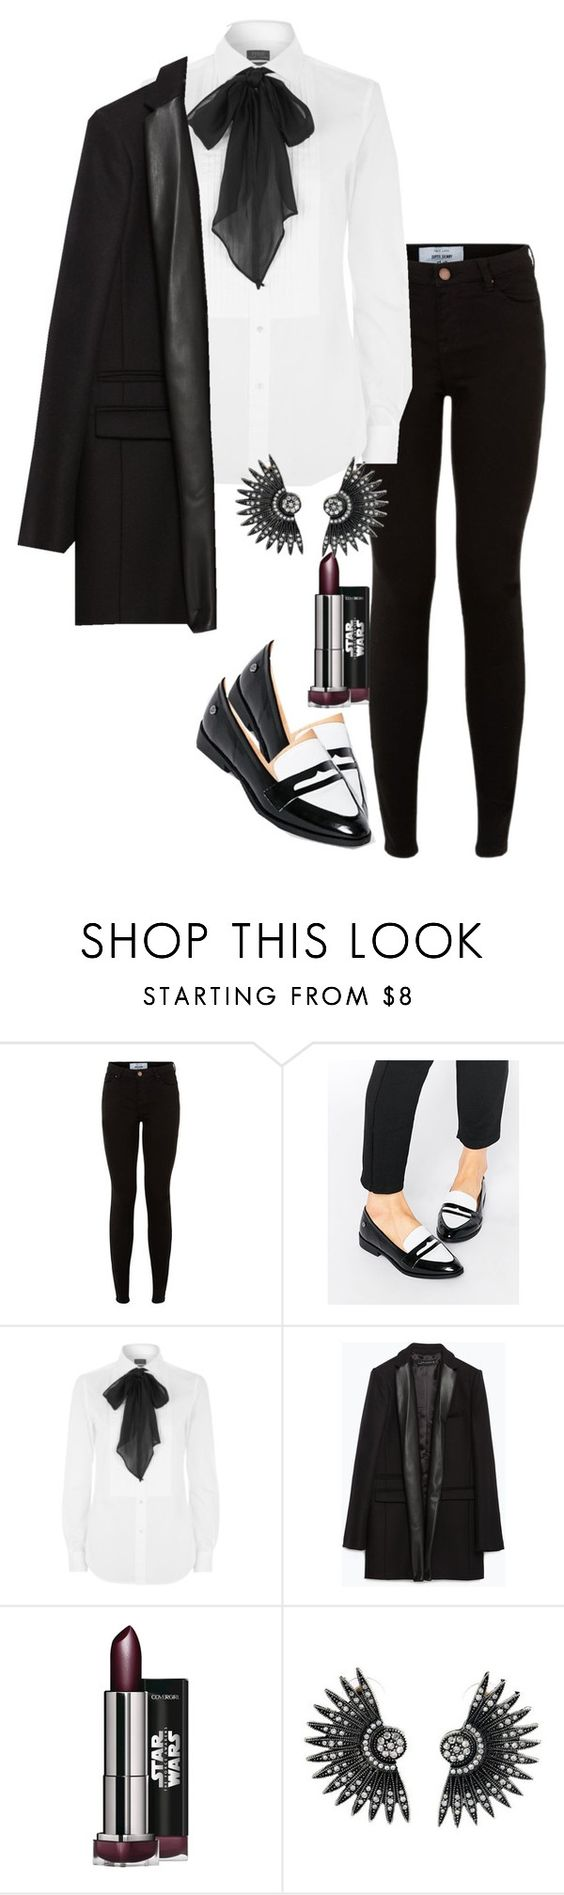 """""""Untitled #1751"""" by itsmeischoice on Polyvore featuring Blink, Polo Ralph Lauren and Zara"""